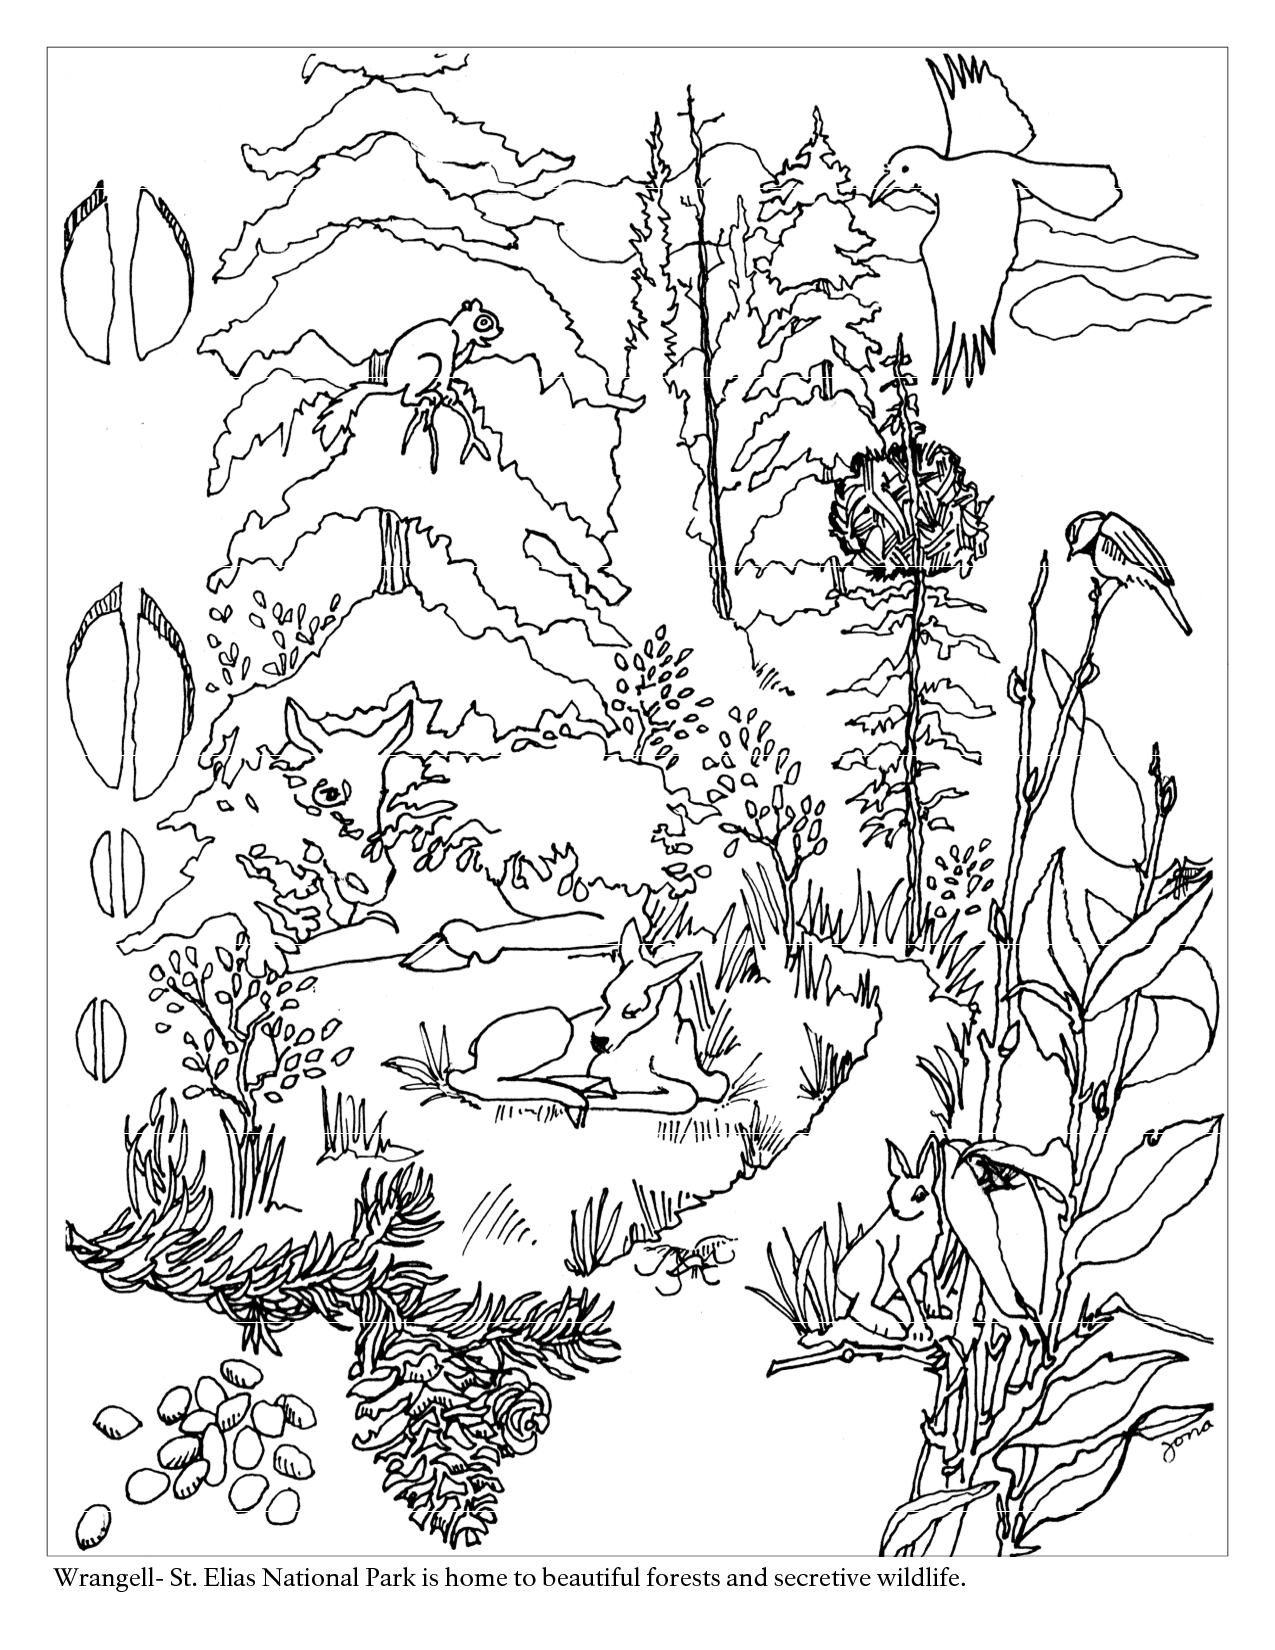 woodland animal coloring pages woodland baby animals coloring pages coloring pages animal woodland pages coloring